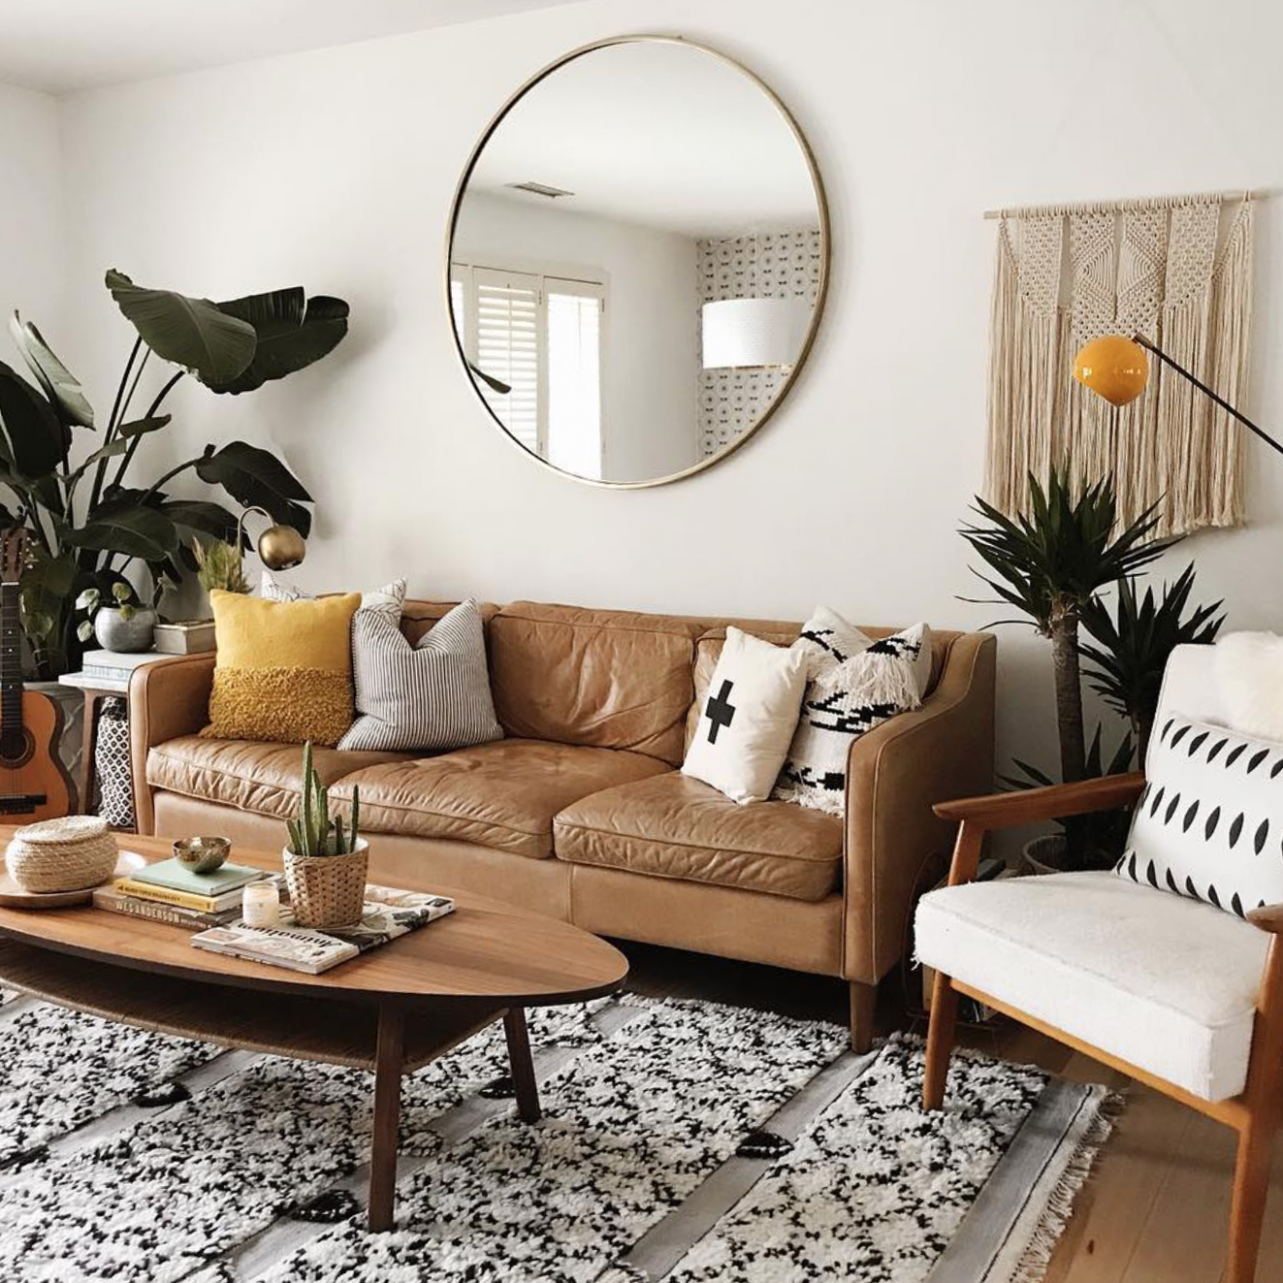 10 Apartment Decorating and Small Living Room Ideas (With images ...